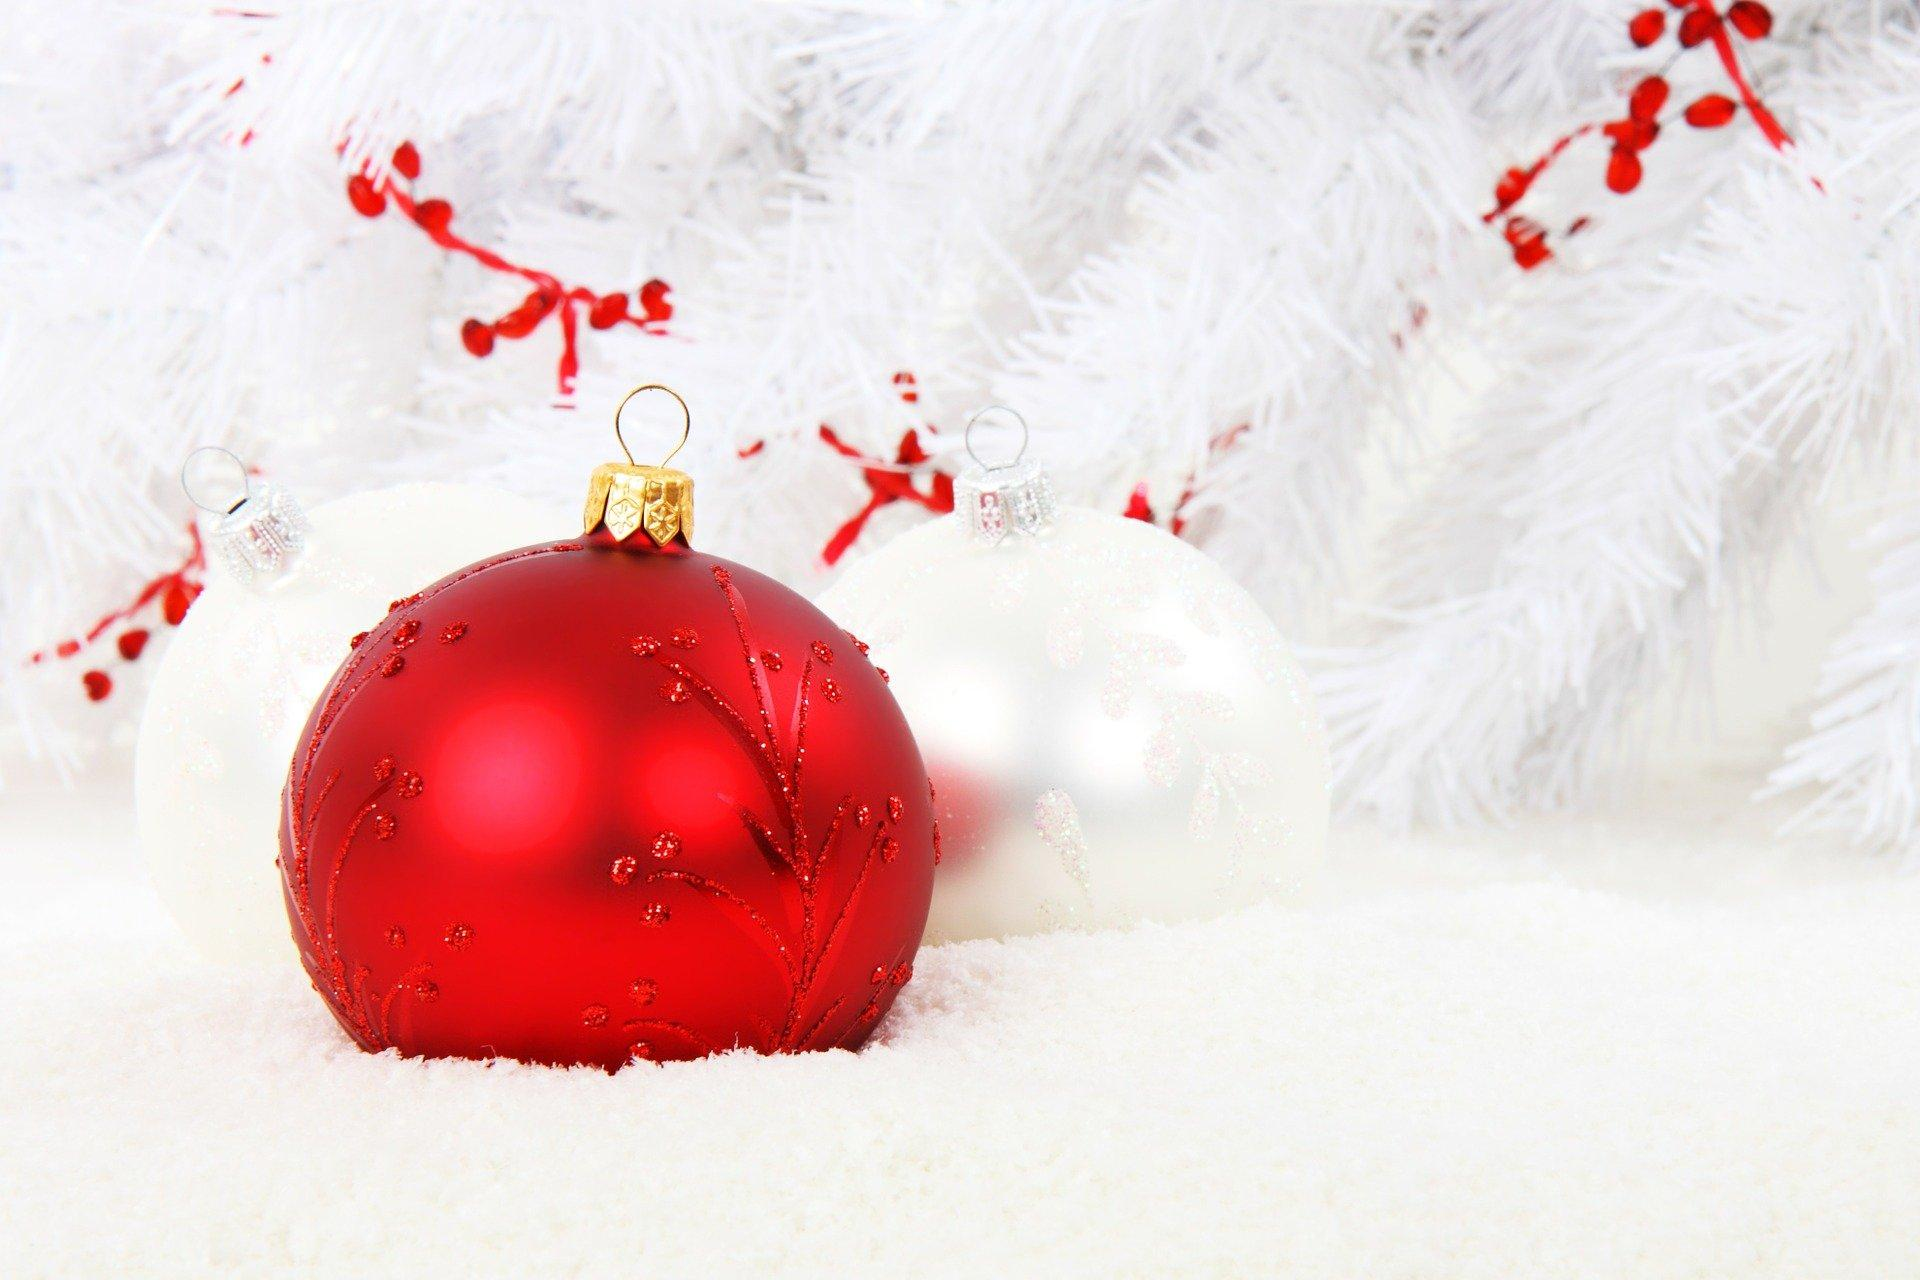 christmas-bauble-15738_1920.jpg